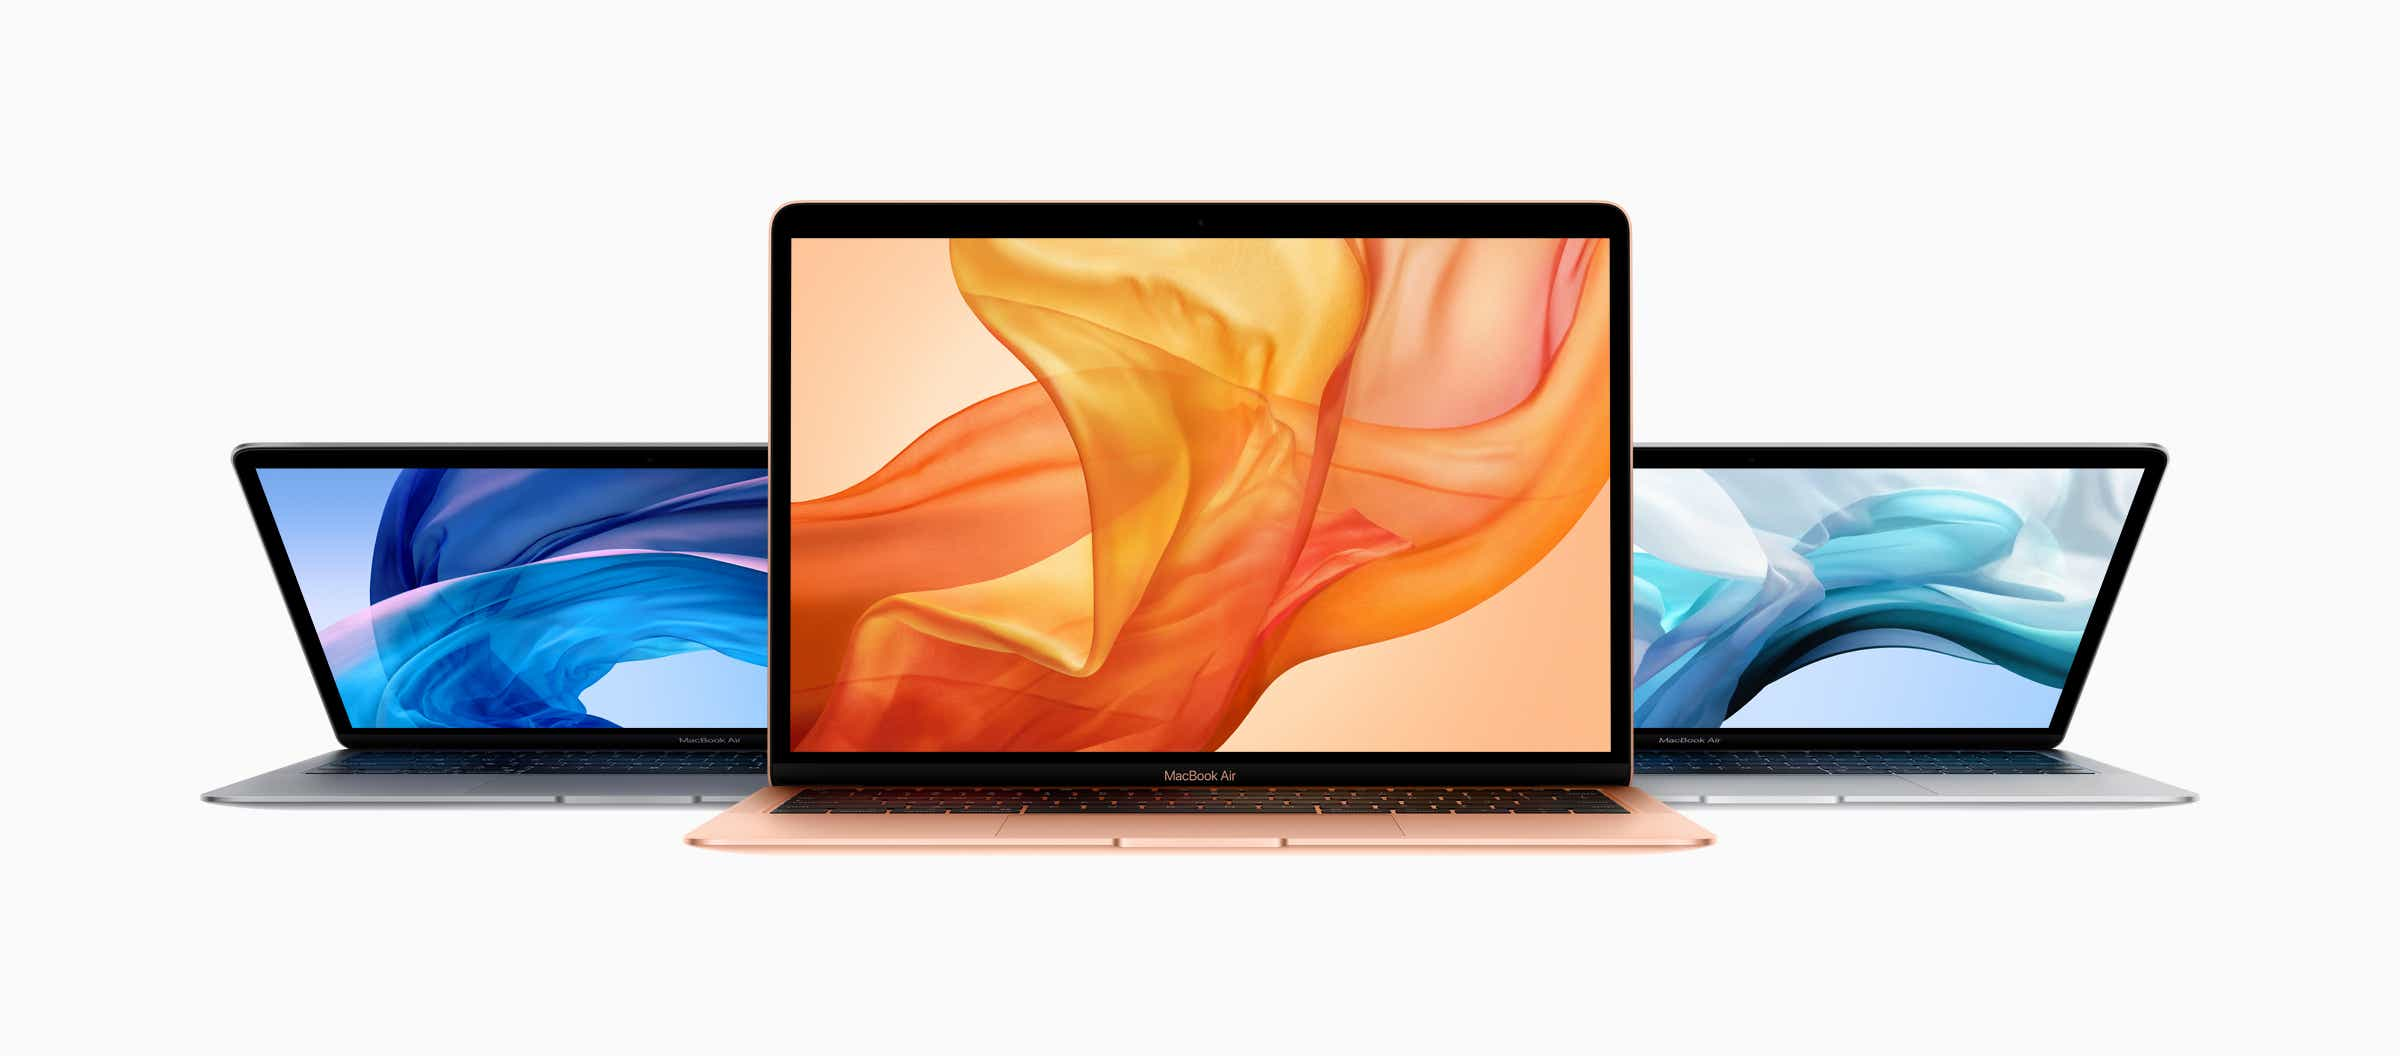 MacBook Air 1.6GHz dual‑core Core i5, 256GB SSD (Late 2018)